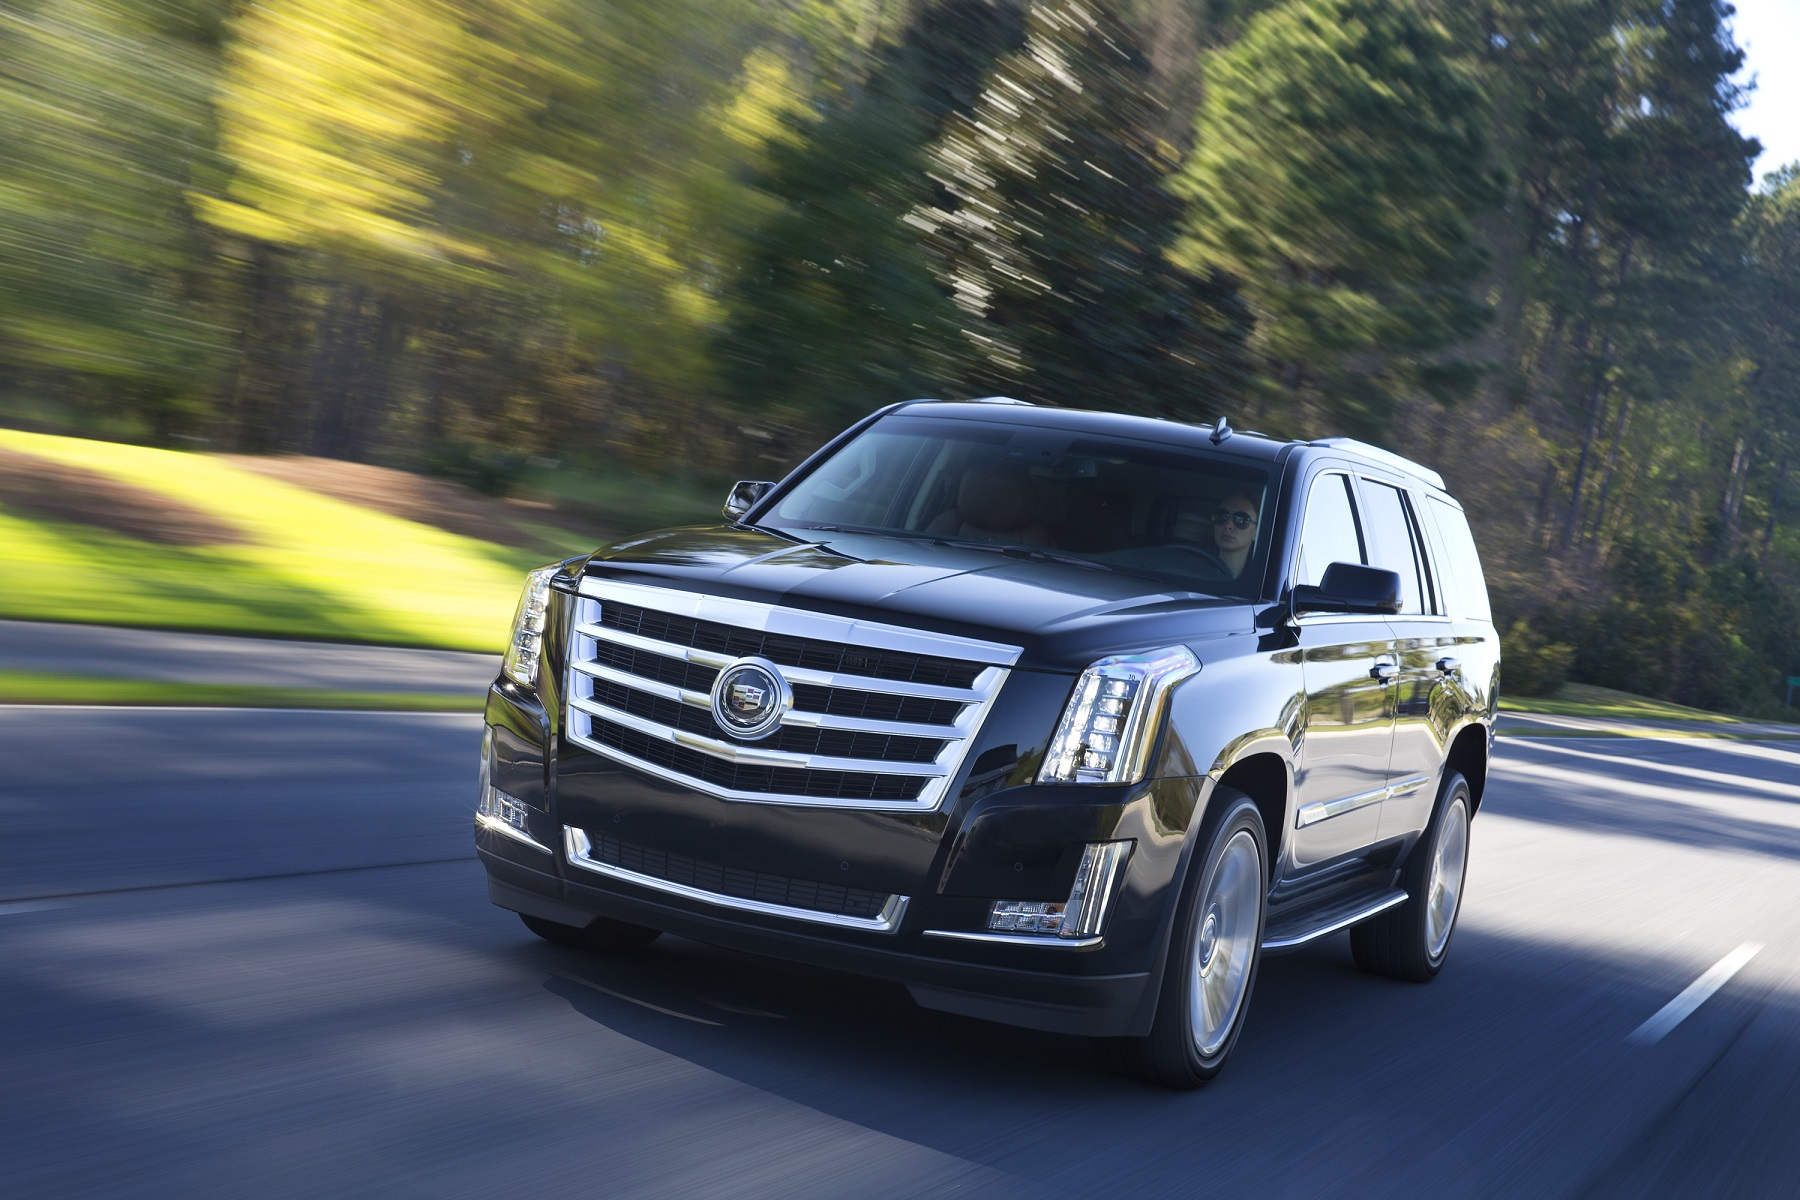 Manufacturer photo: The fourth-generation Escalade is an entirely new design yet instantly recognizable